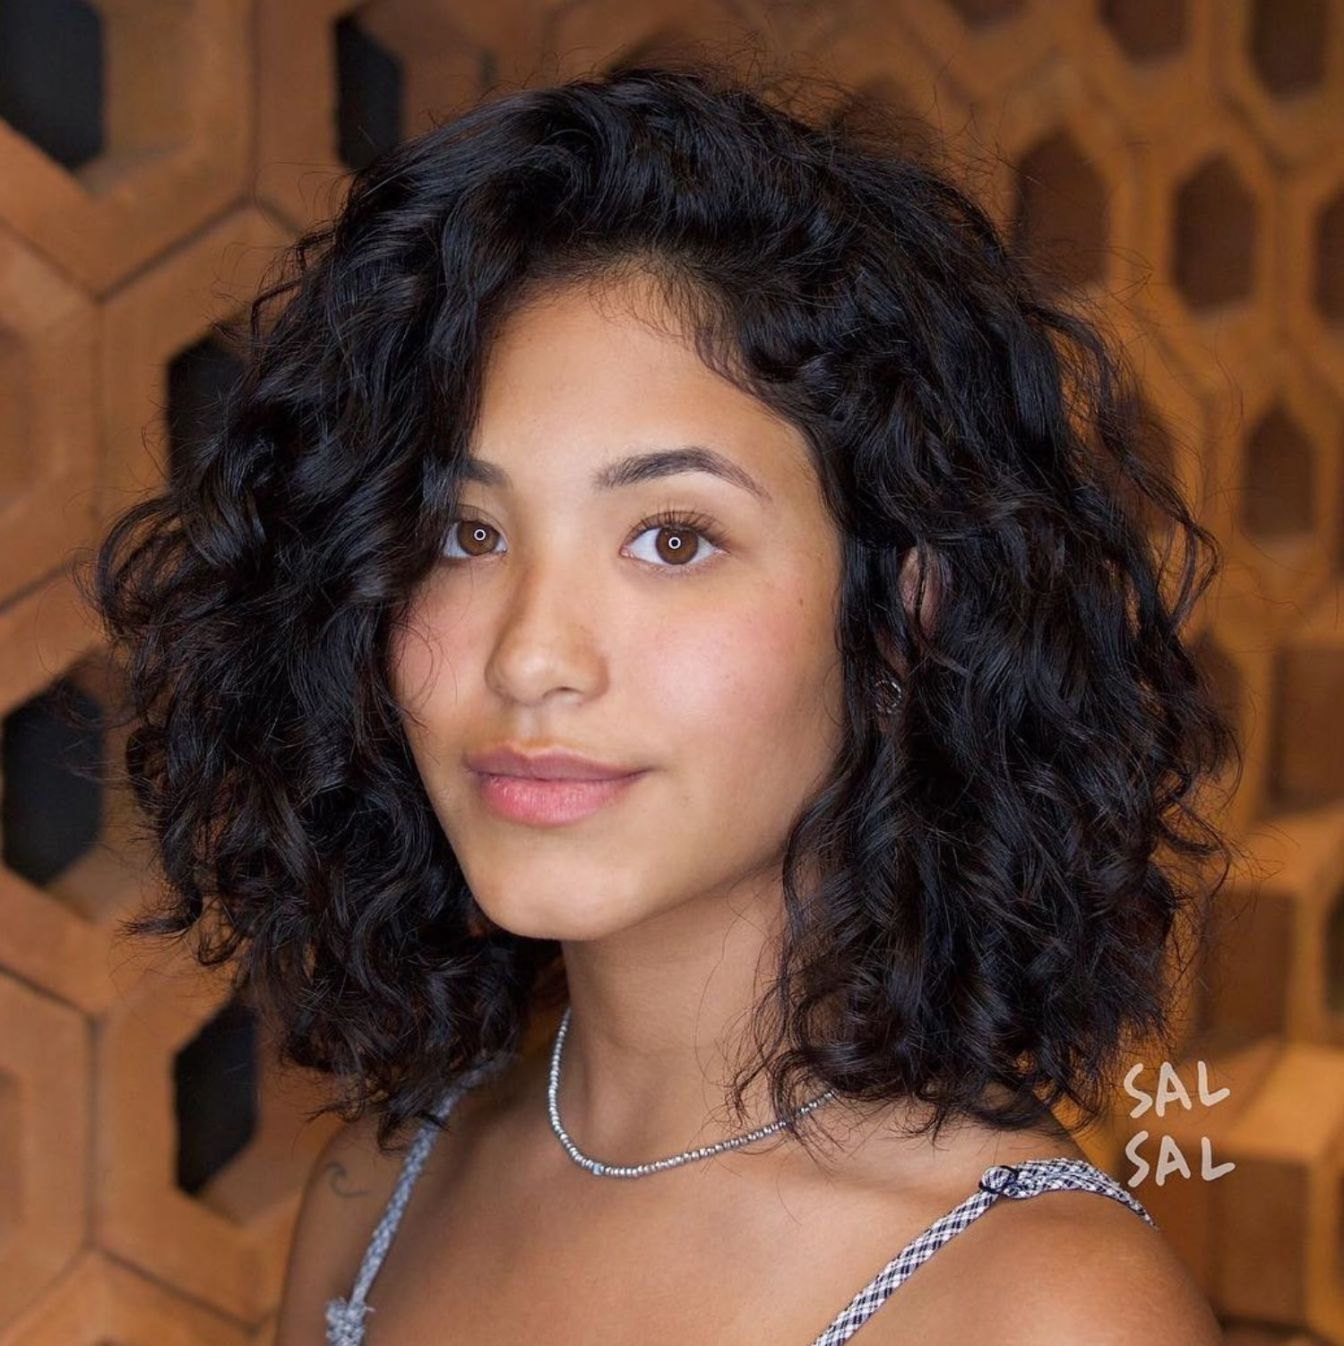 Pretty Curly Black Bob with Side Bangs   Curly hair styles, Curly ...